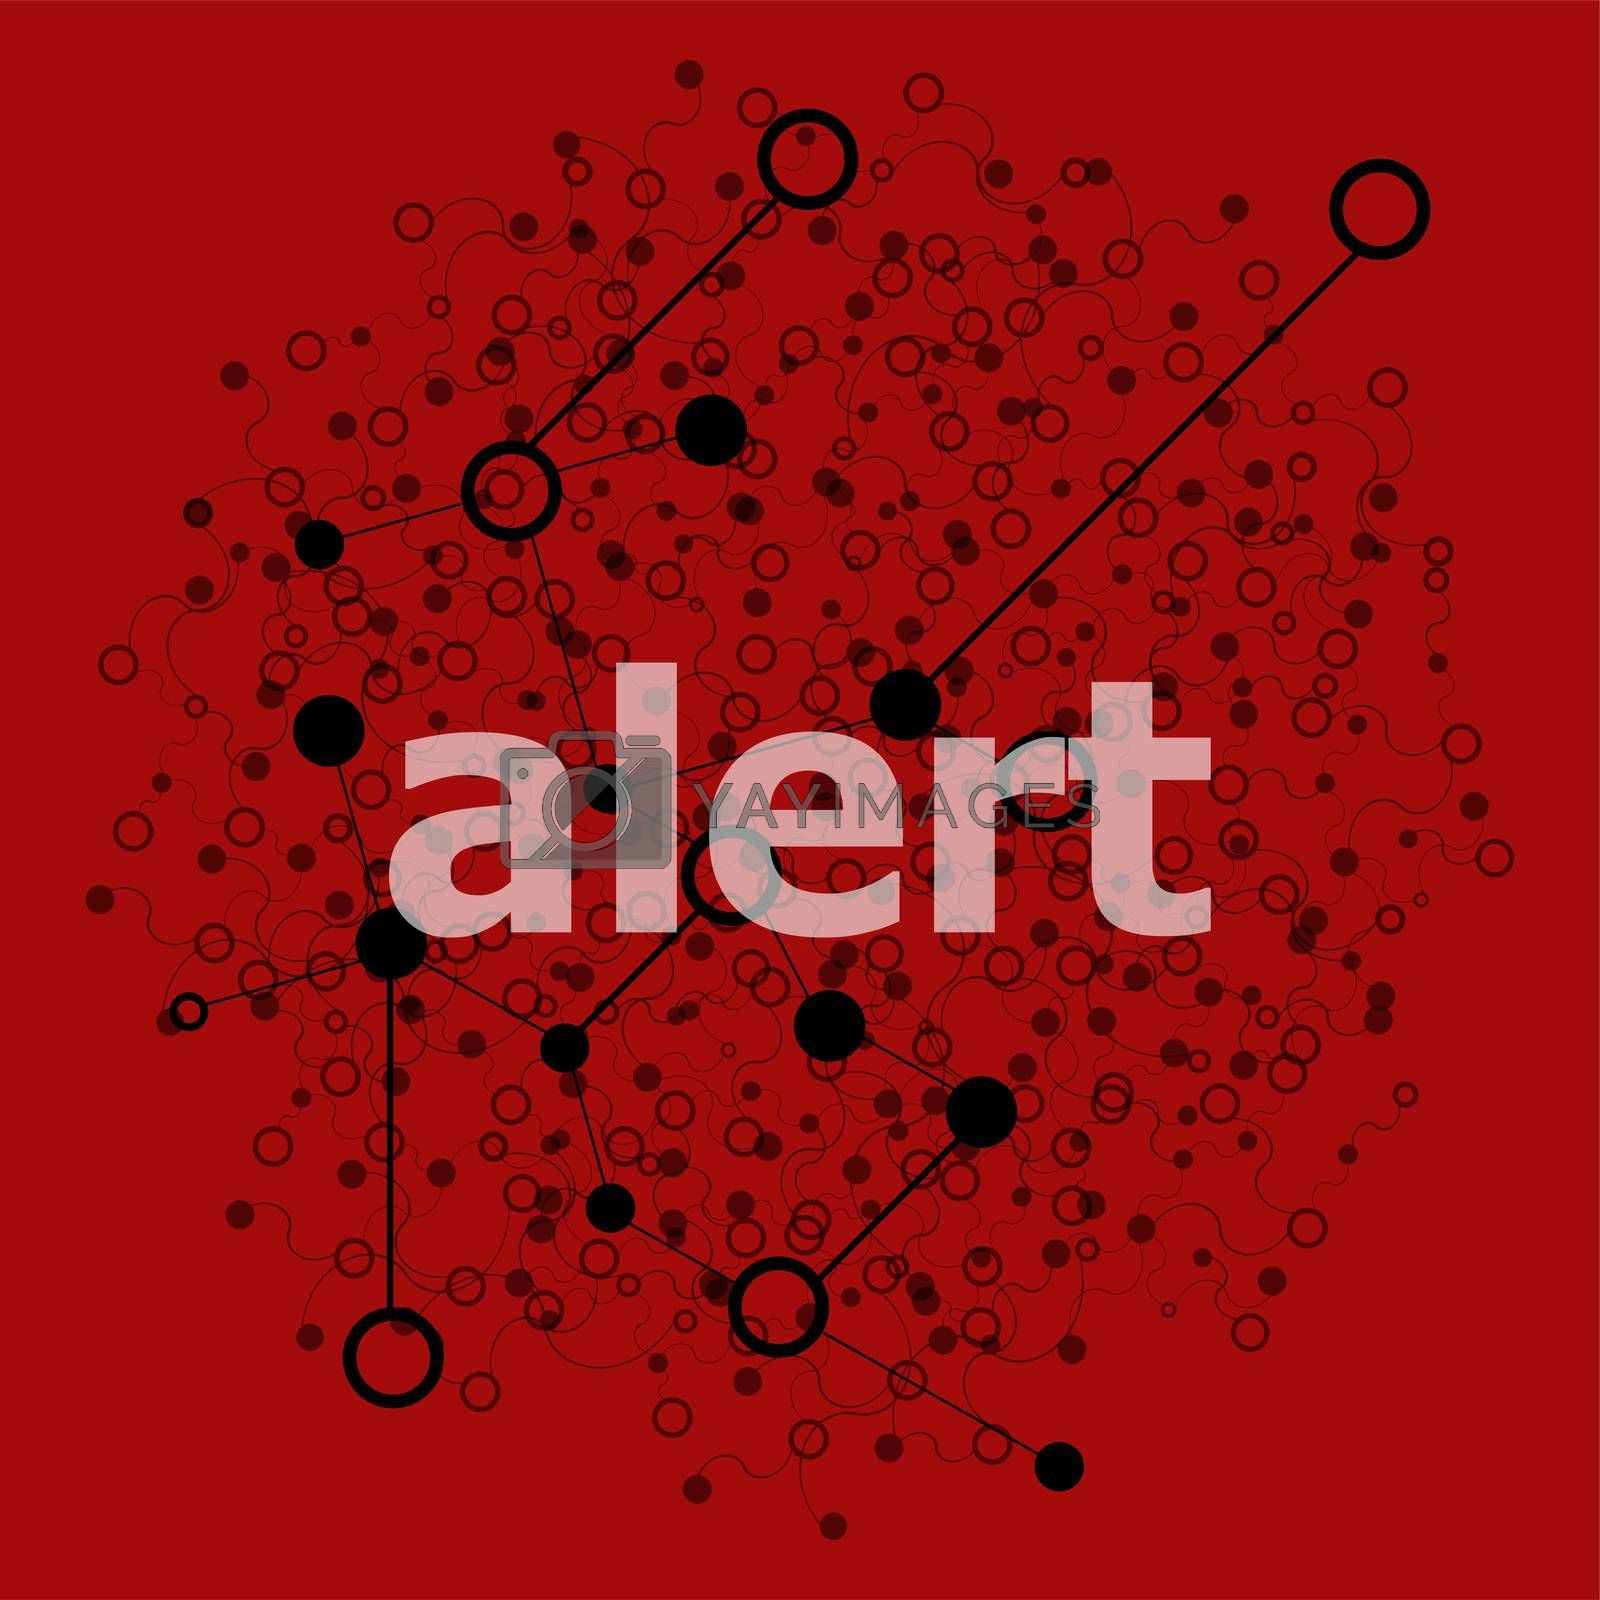 Text Alert. Security concept . Abstract background with connecting dots and lines